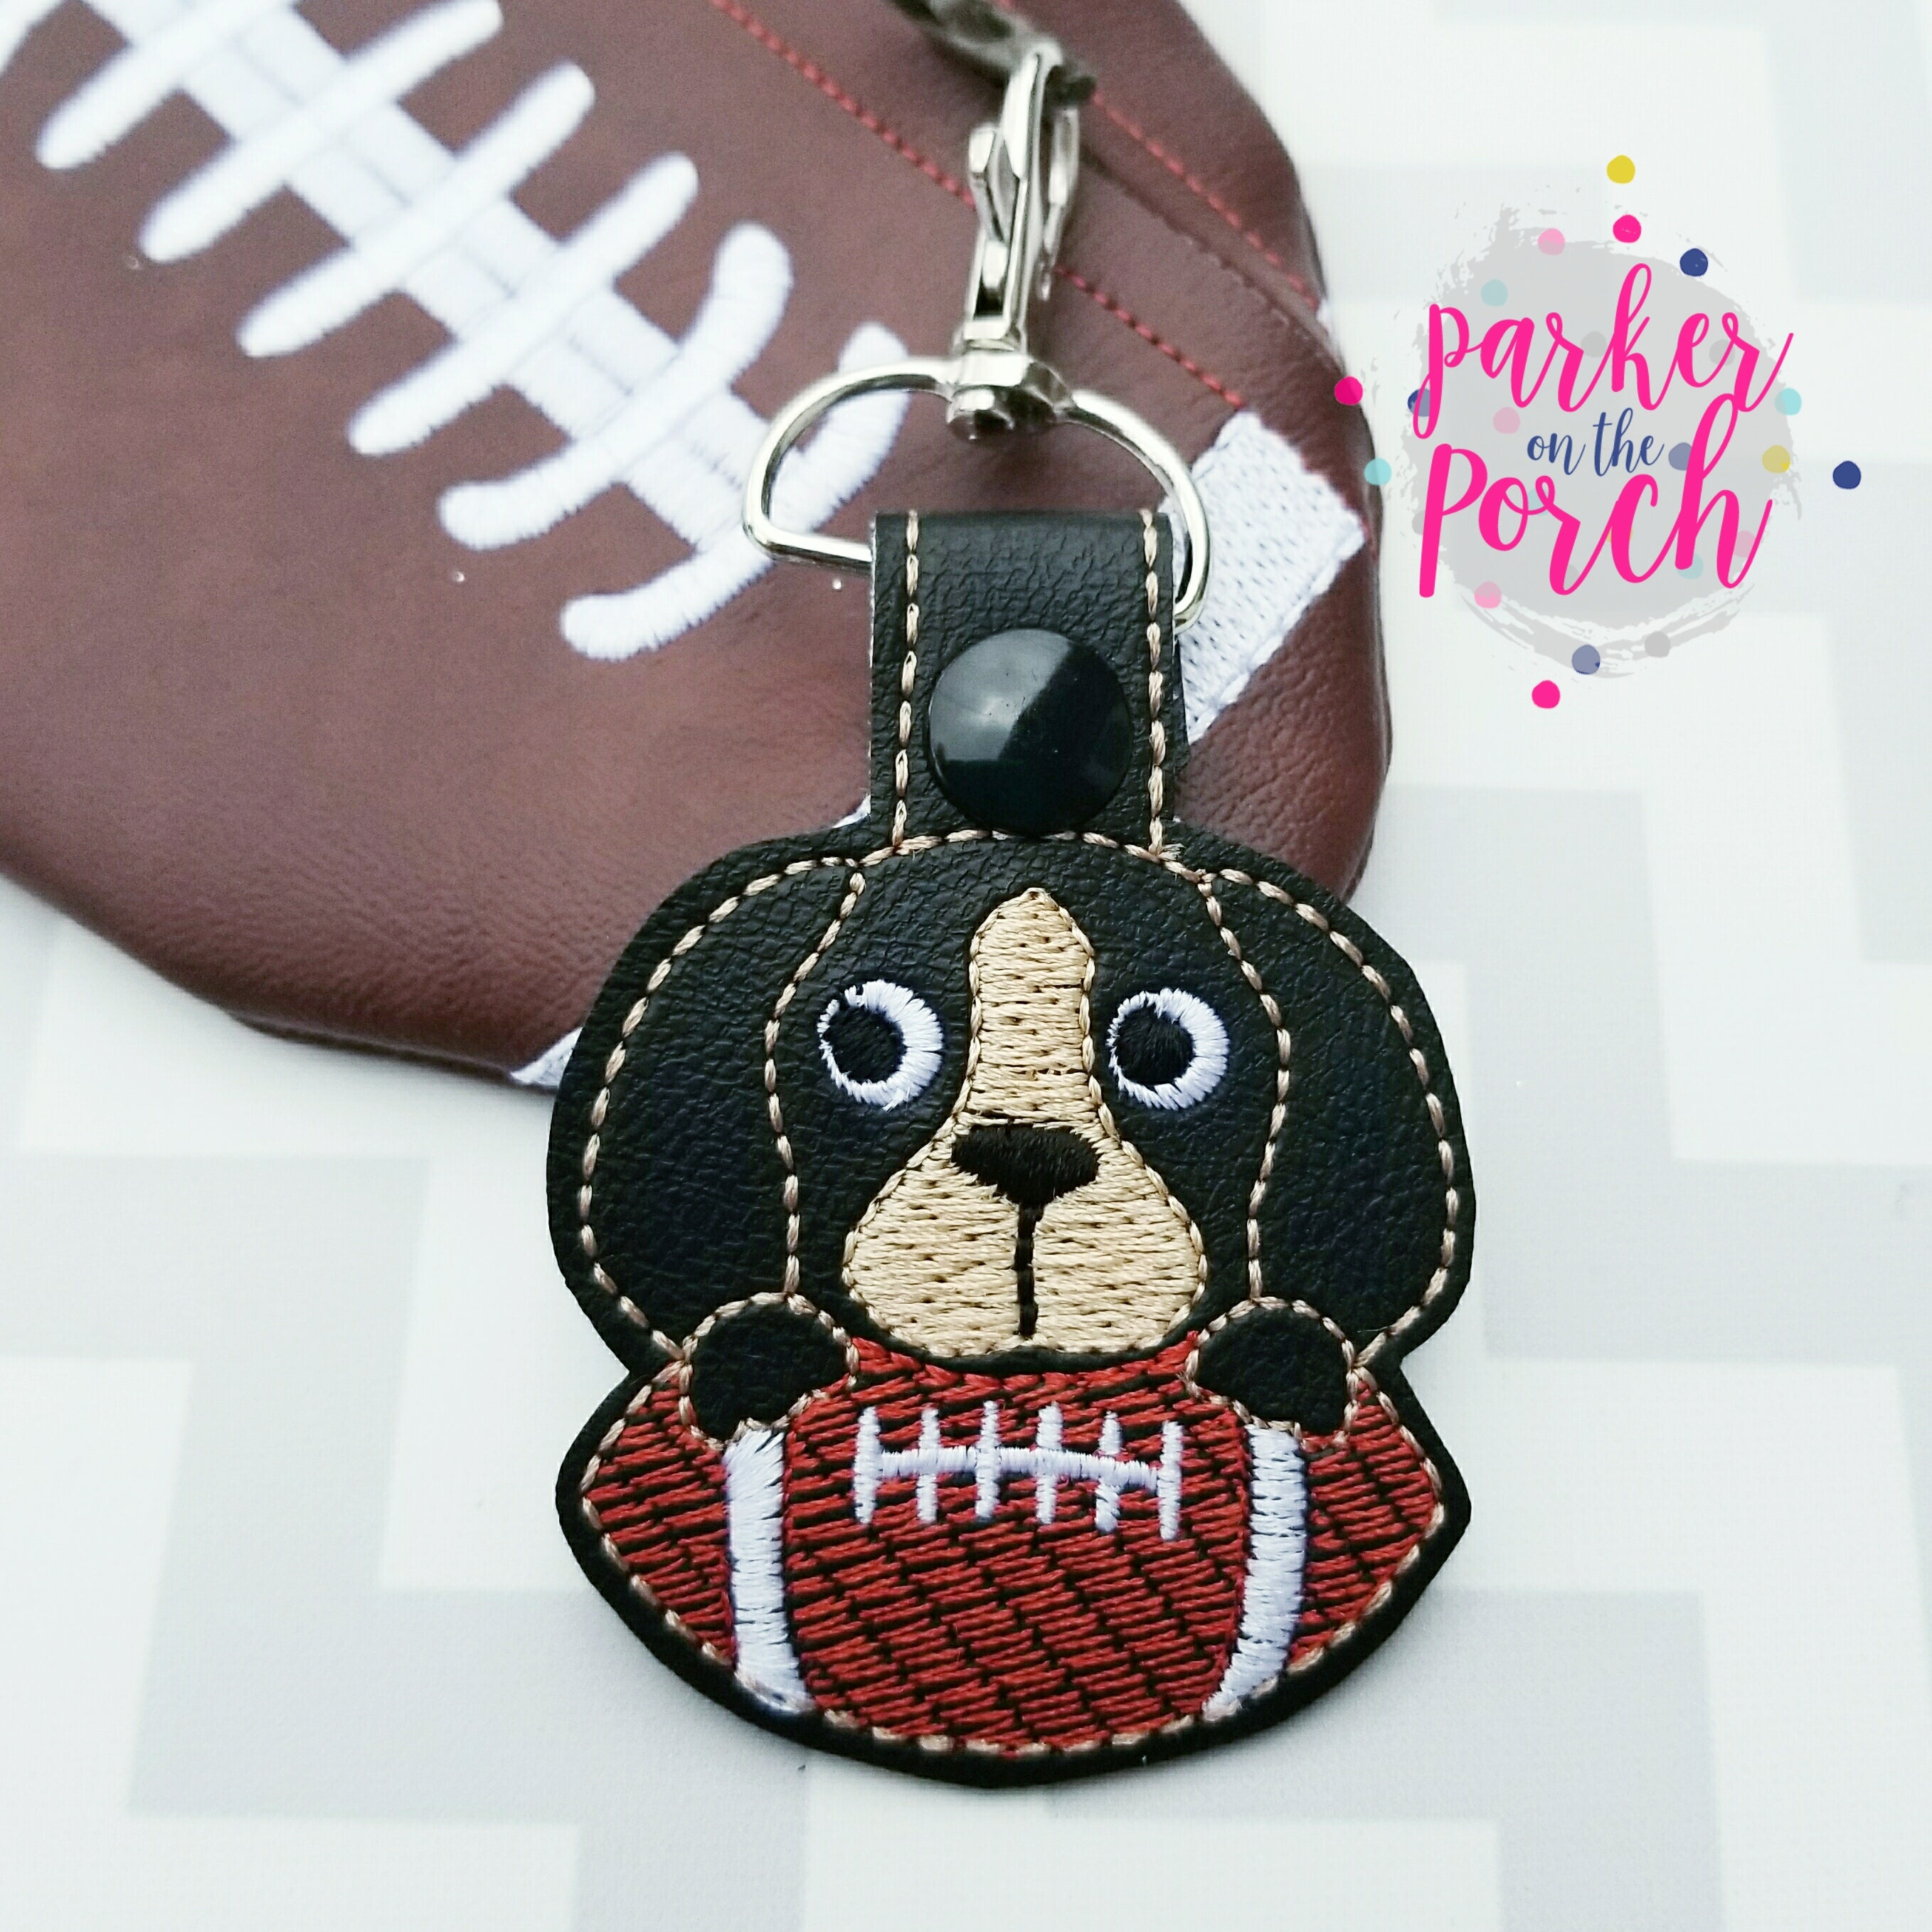 Digital Download- Mascot Hound Dog Snaptab - in the hoop machine embroidery ITH pattern